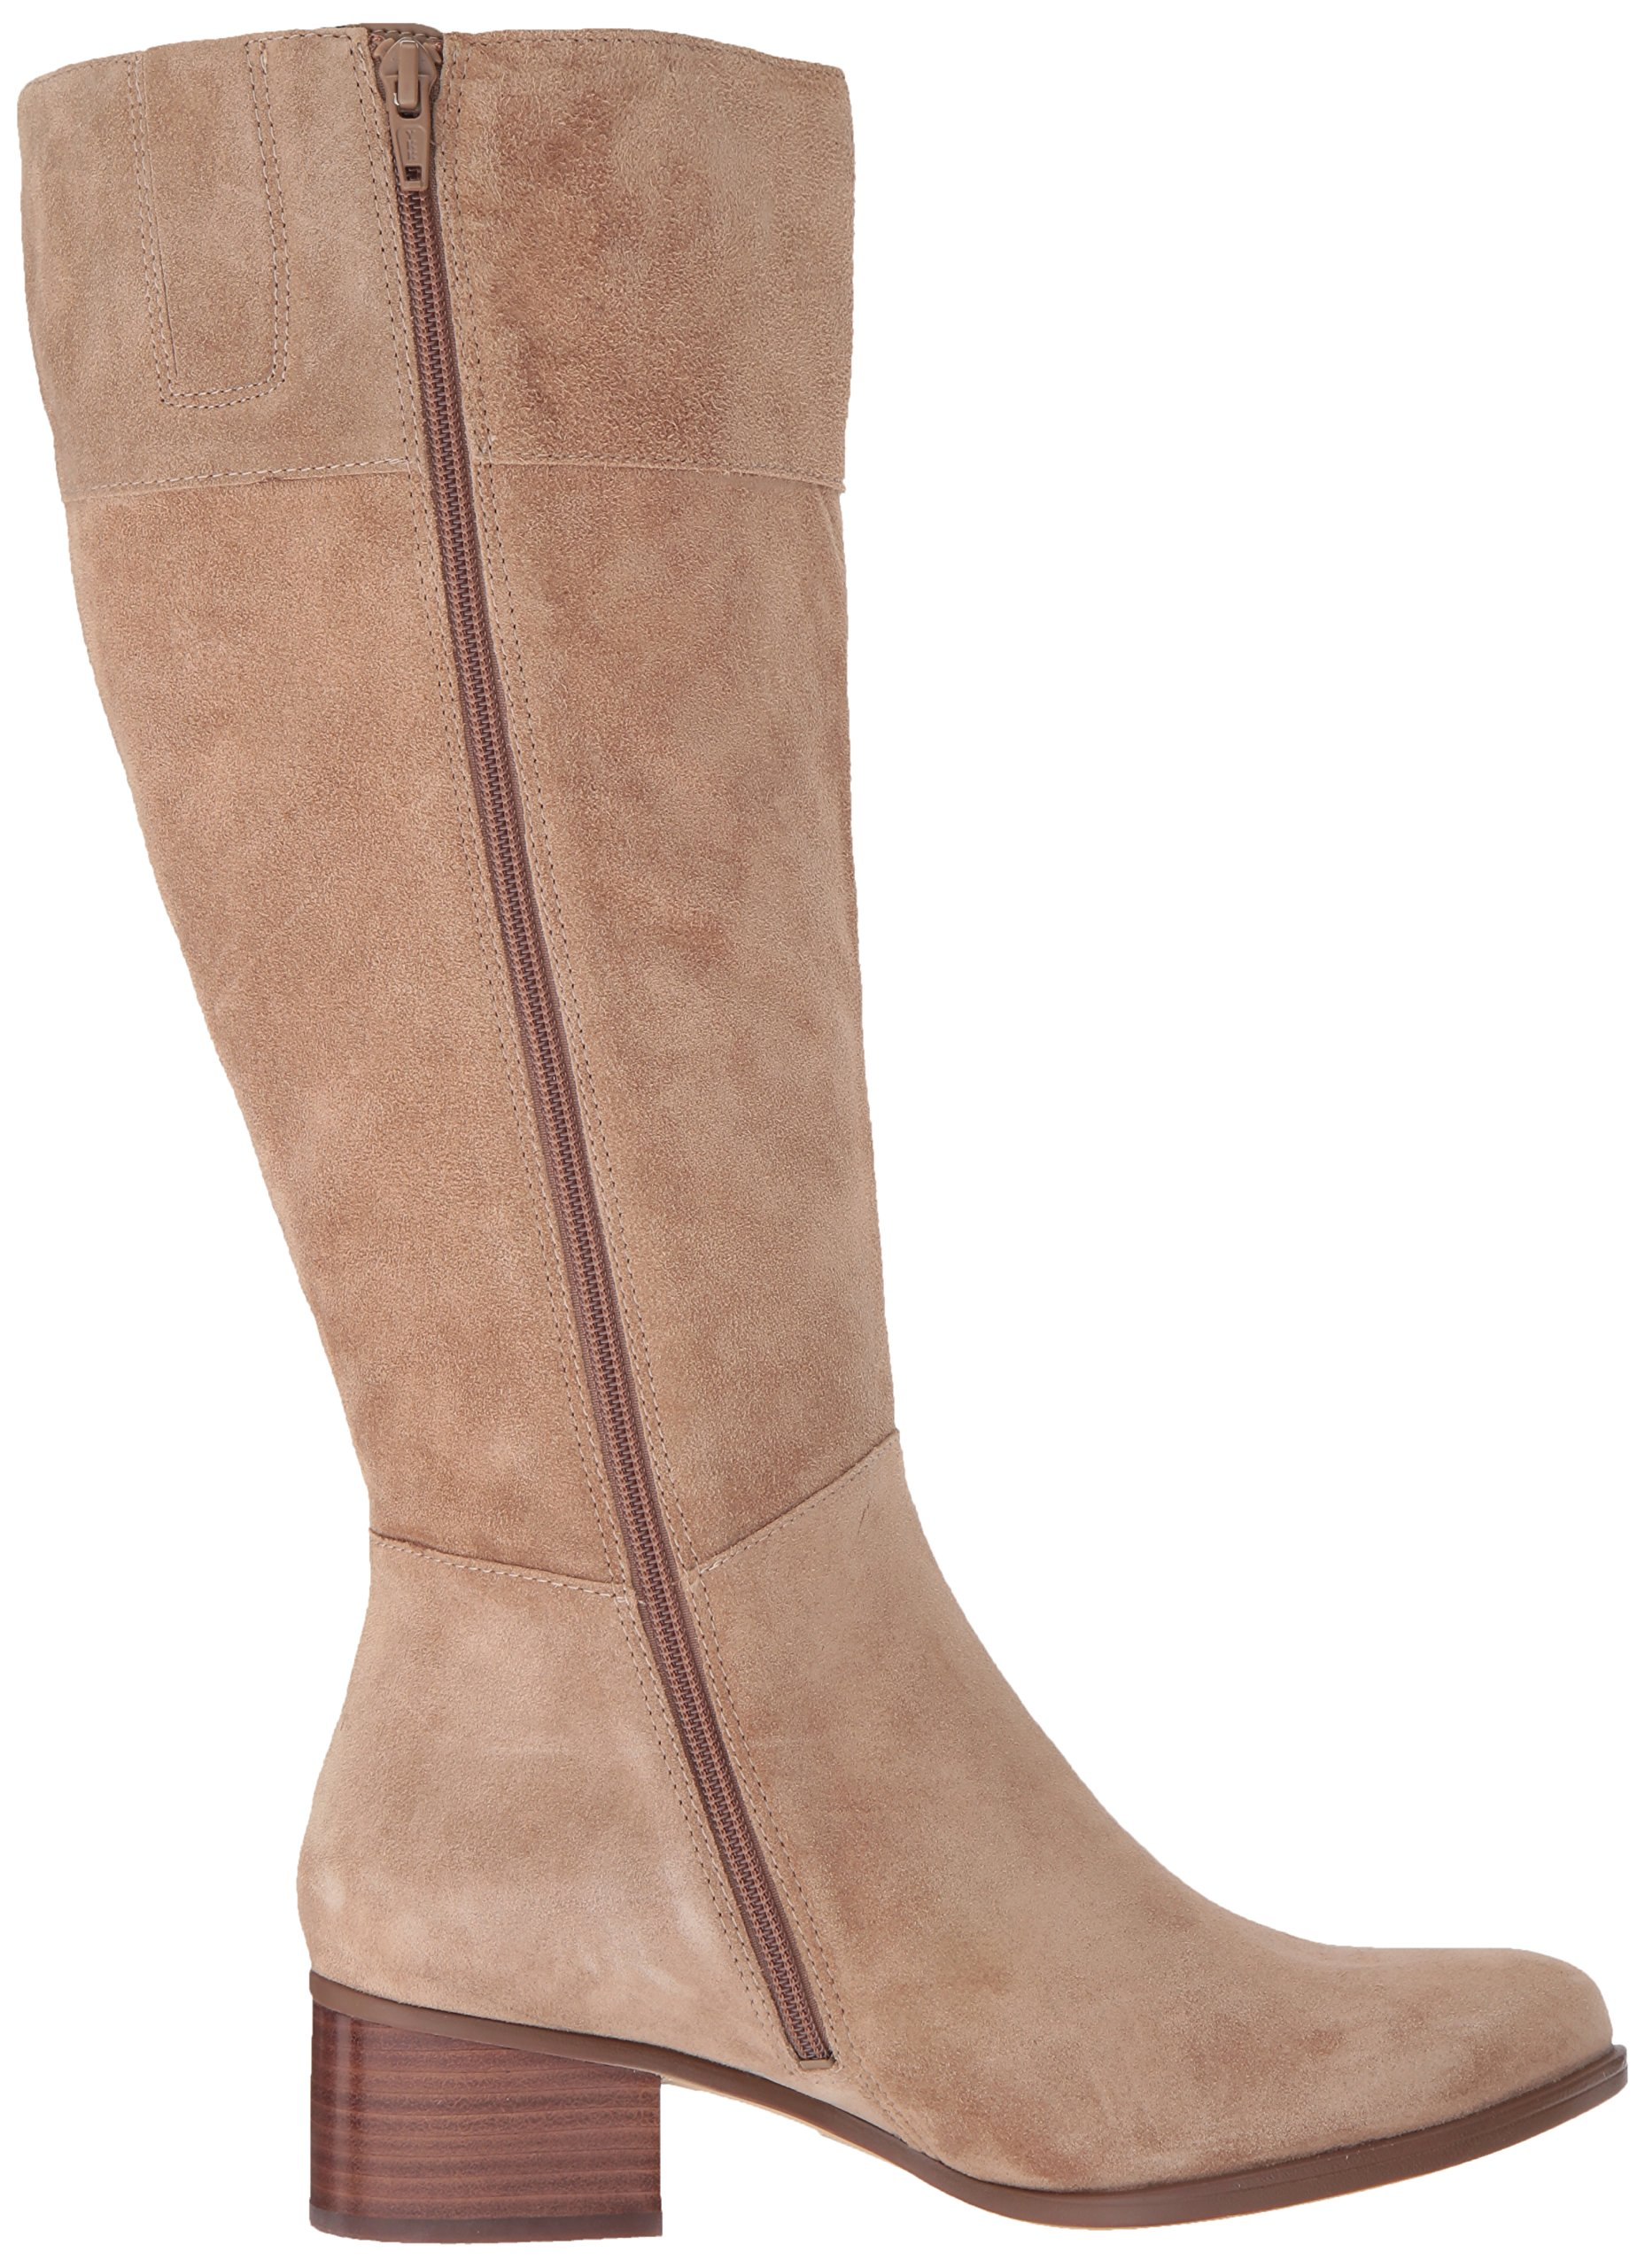 Naturalizer Women's Demi Wc Riding Boot, Oatmeal, 9 M US by Naturalizer (Image #7)